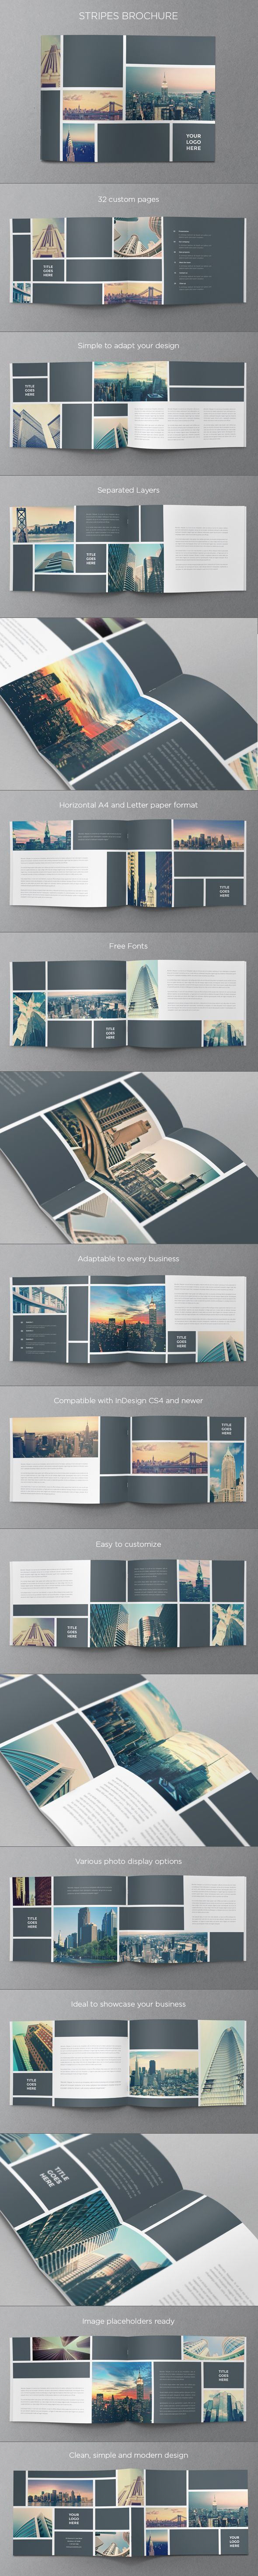 Real Estate Stripes Brochure. Download here: http://graphicriver.net/item/real-estate-stripes-brochure/6058277 #design #brochure: